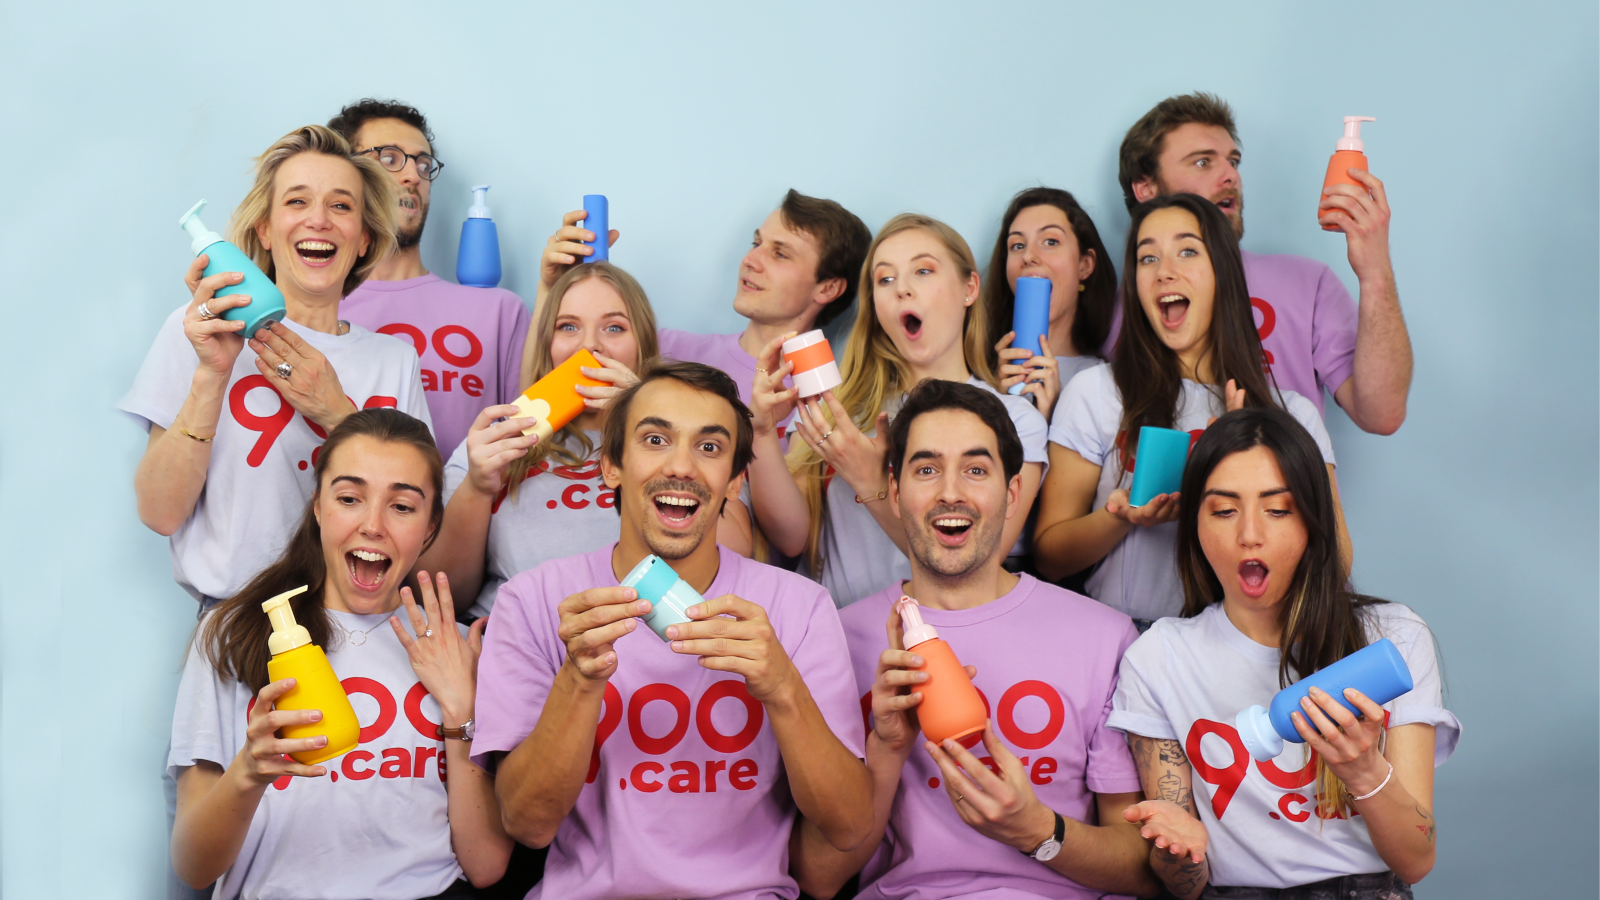 Thumbnail for news article called 900.care (Future 40, 2020) raises 10M€ to free our bathrooms from single use plastic